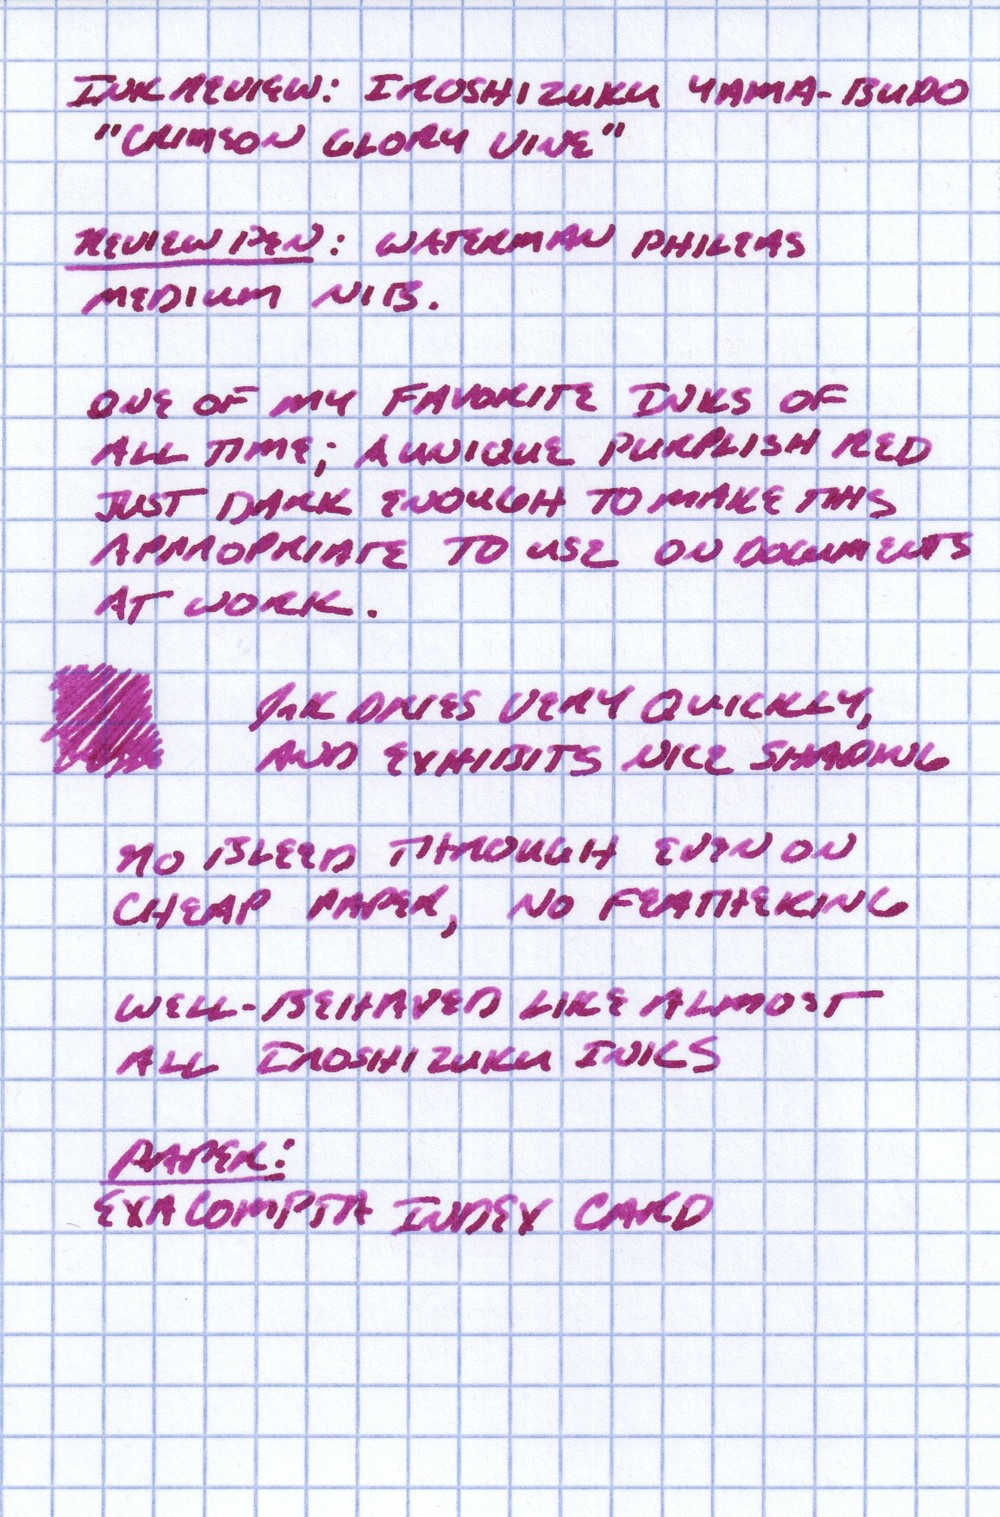 Handwritten review of Iroshizuku Yama Budo on Exacompta Index Card stock.